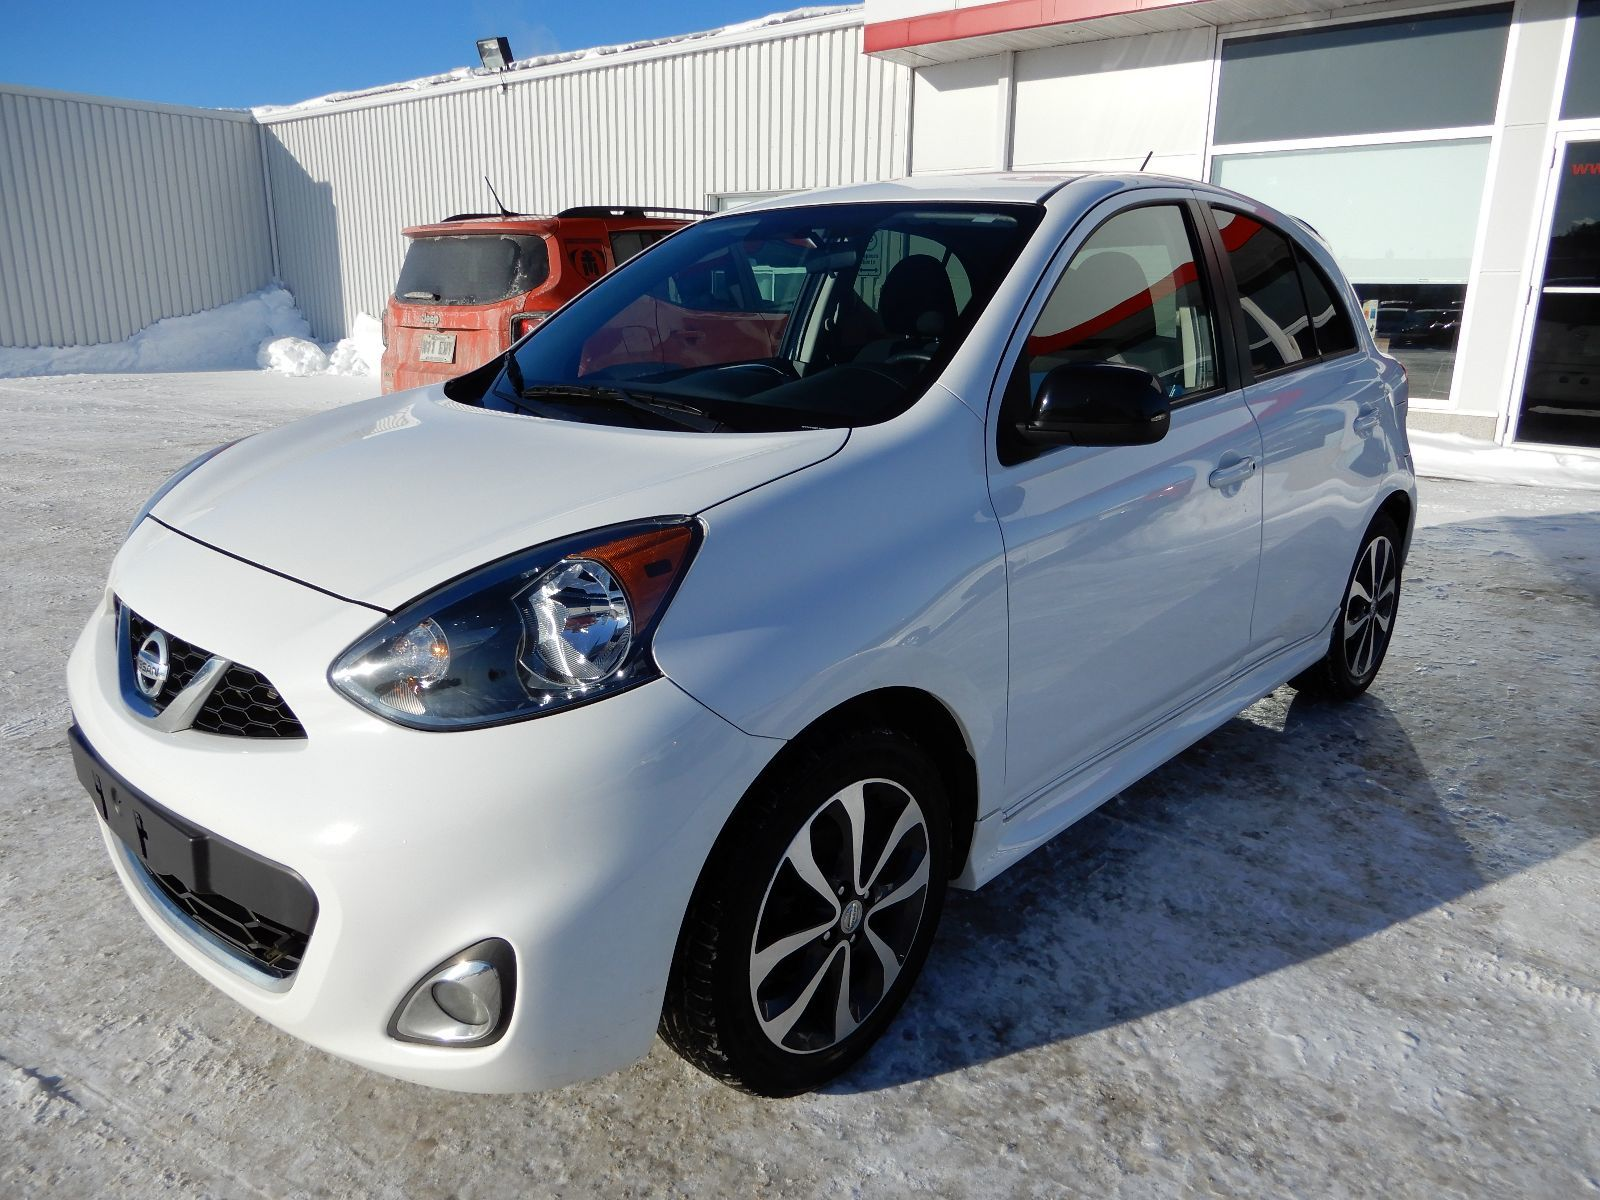 Used 2015 Nissan Micra SV in Sept-Iles - Used inventory - Sept-Iles Toyota  in Sept-Iles, Quebec